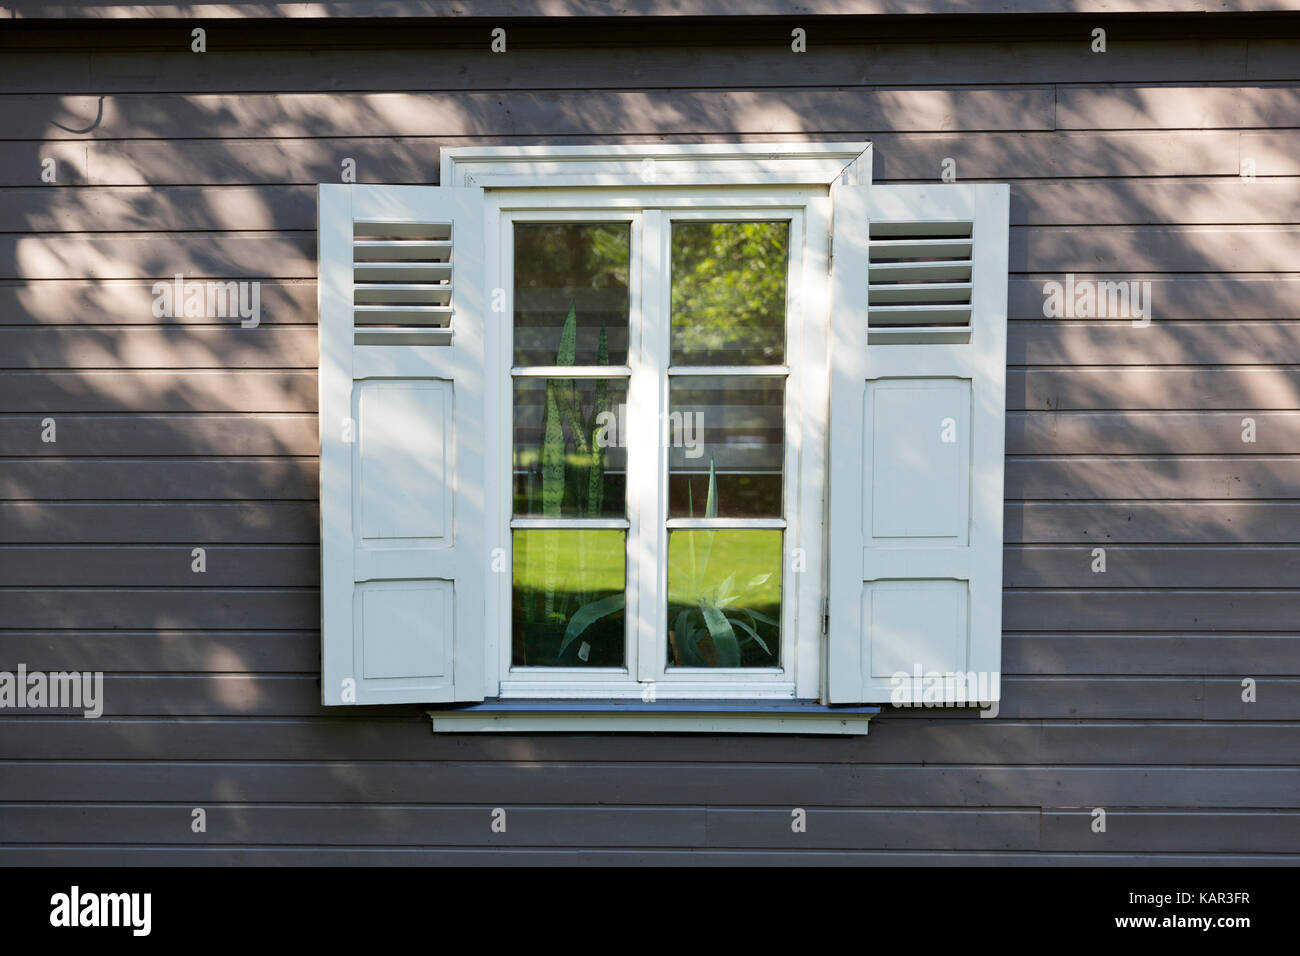 Small Vintage White Window With Shutters On Wooden Grey Wall